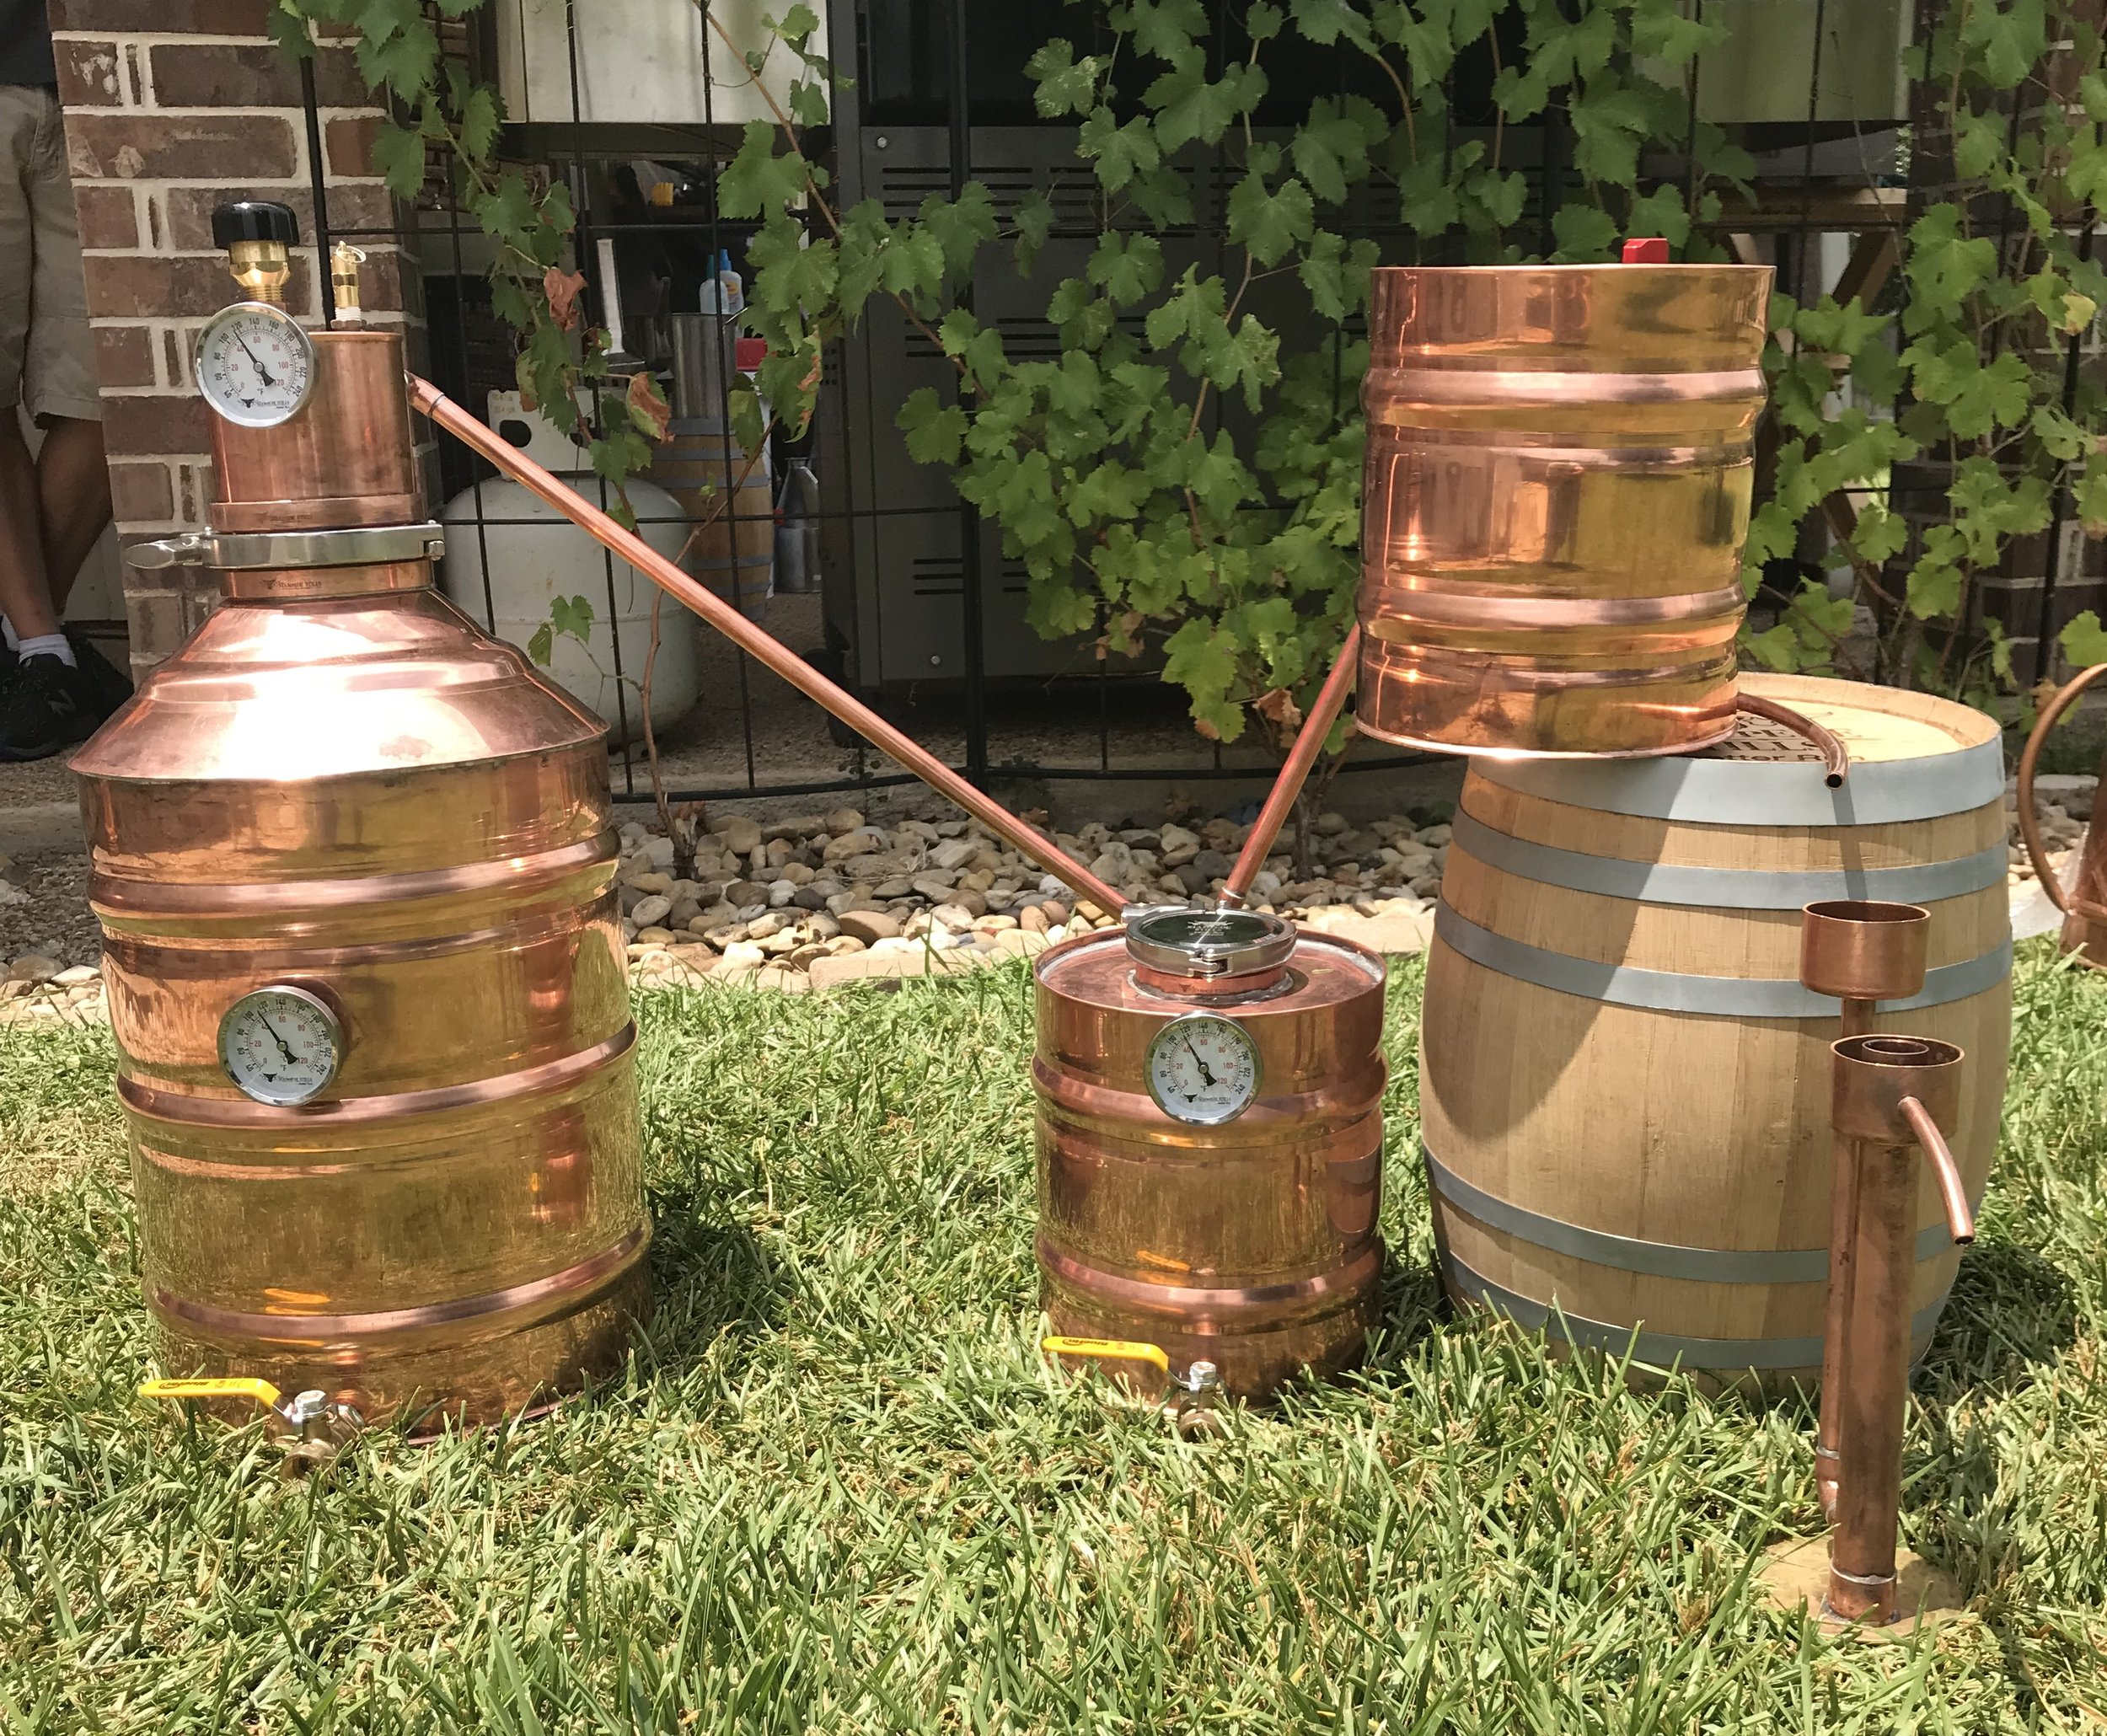 A copper still setup from Stampede Stills, based in Hewitt.